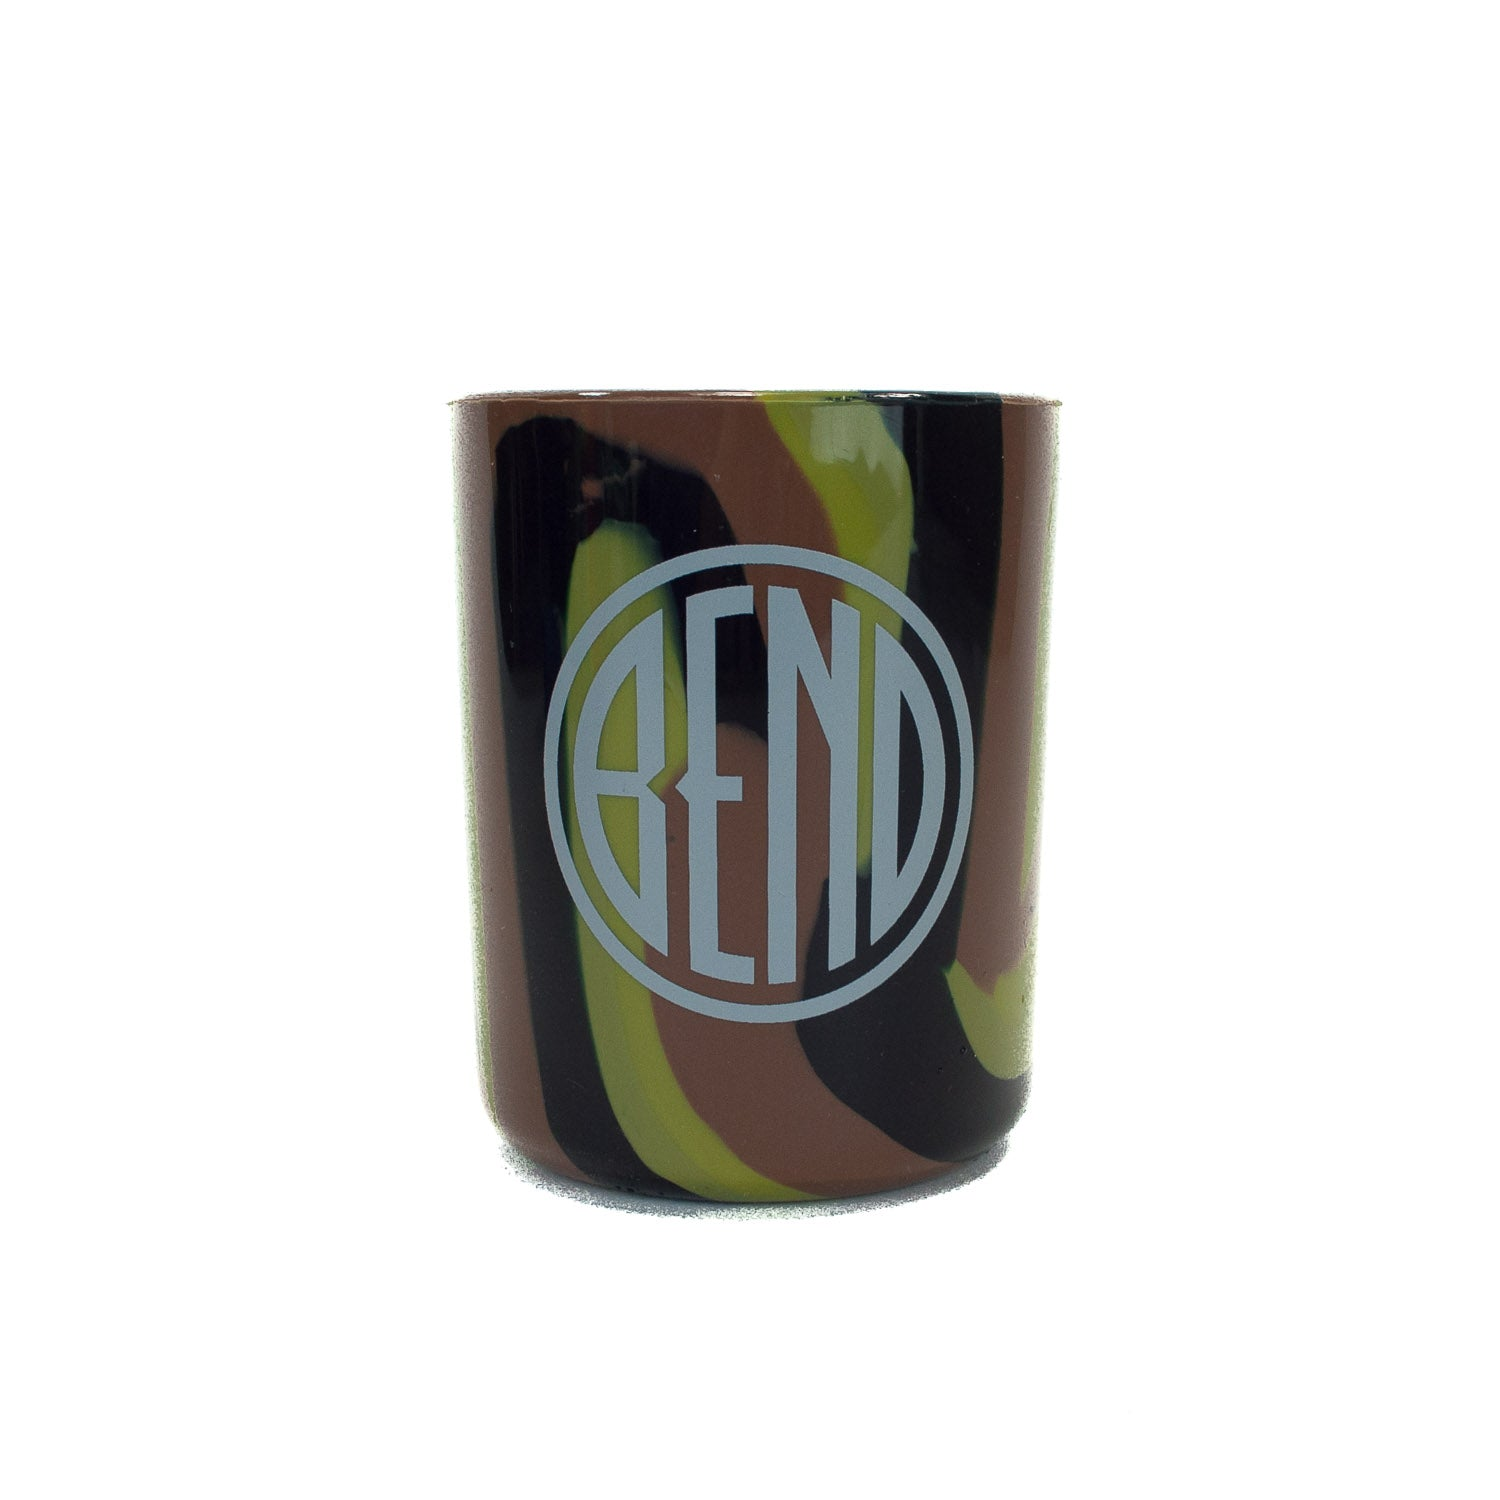 Souvenir Silipint camo color cup with Bend, Oregon logo